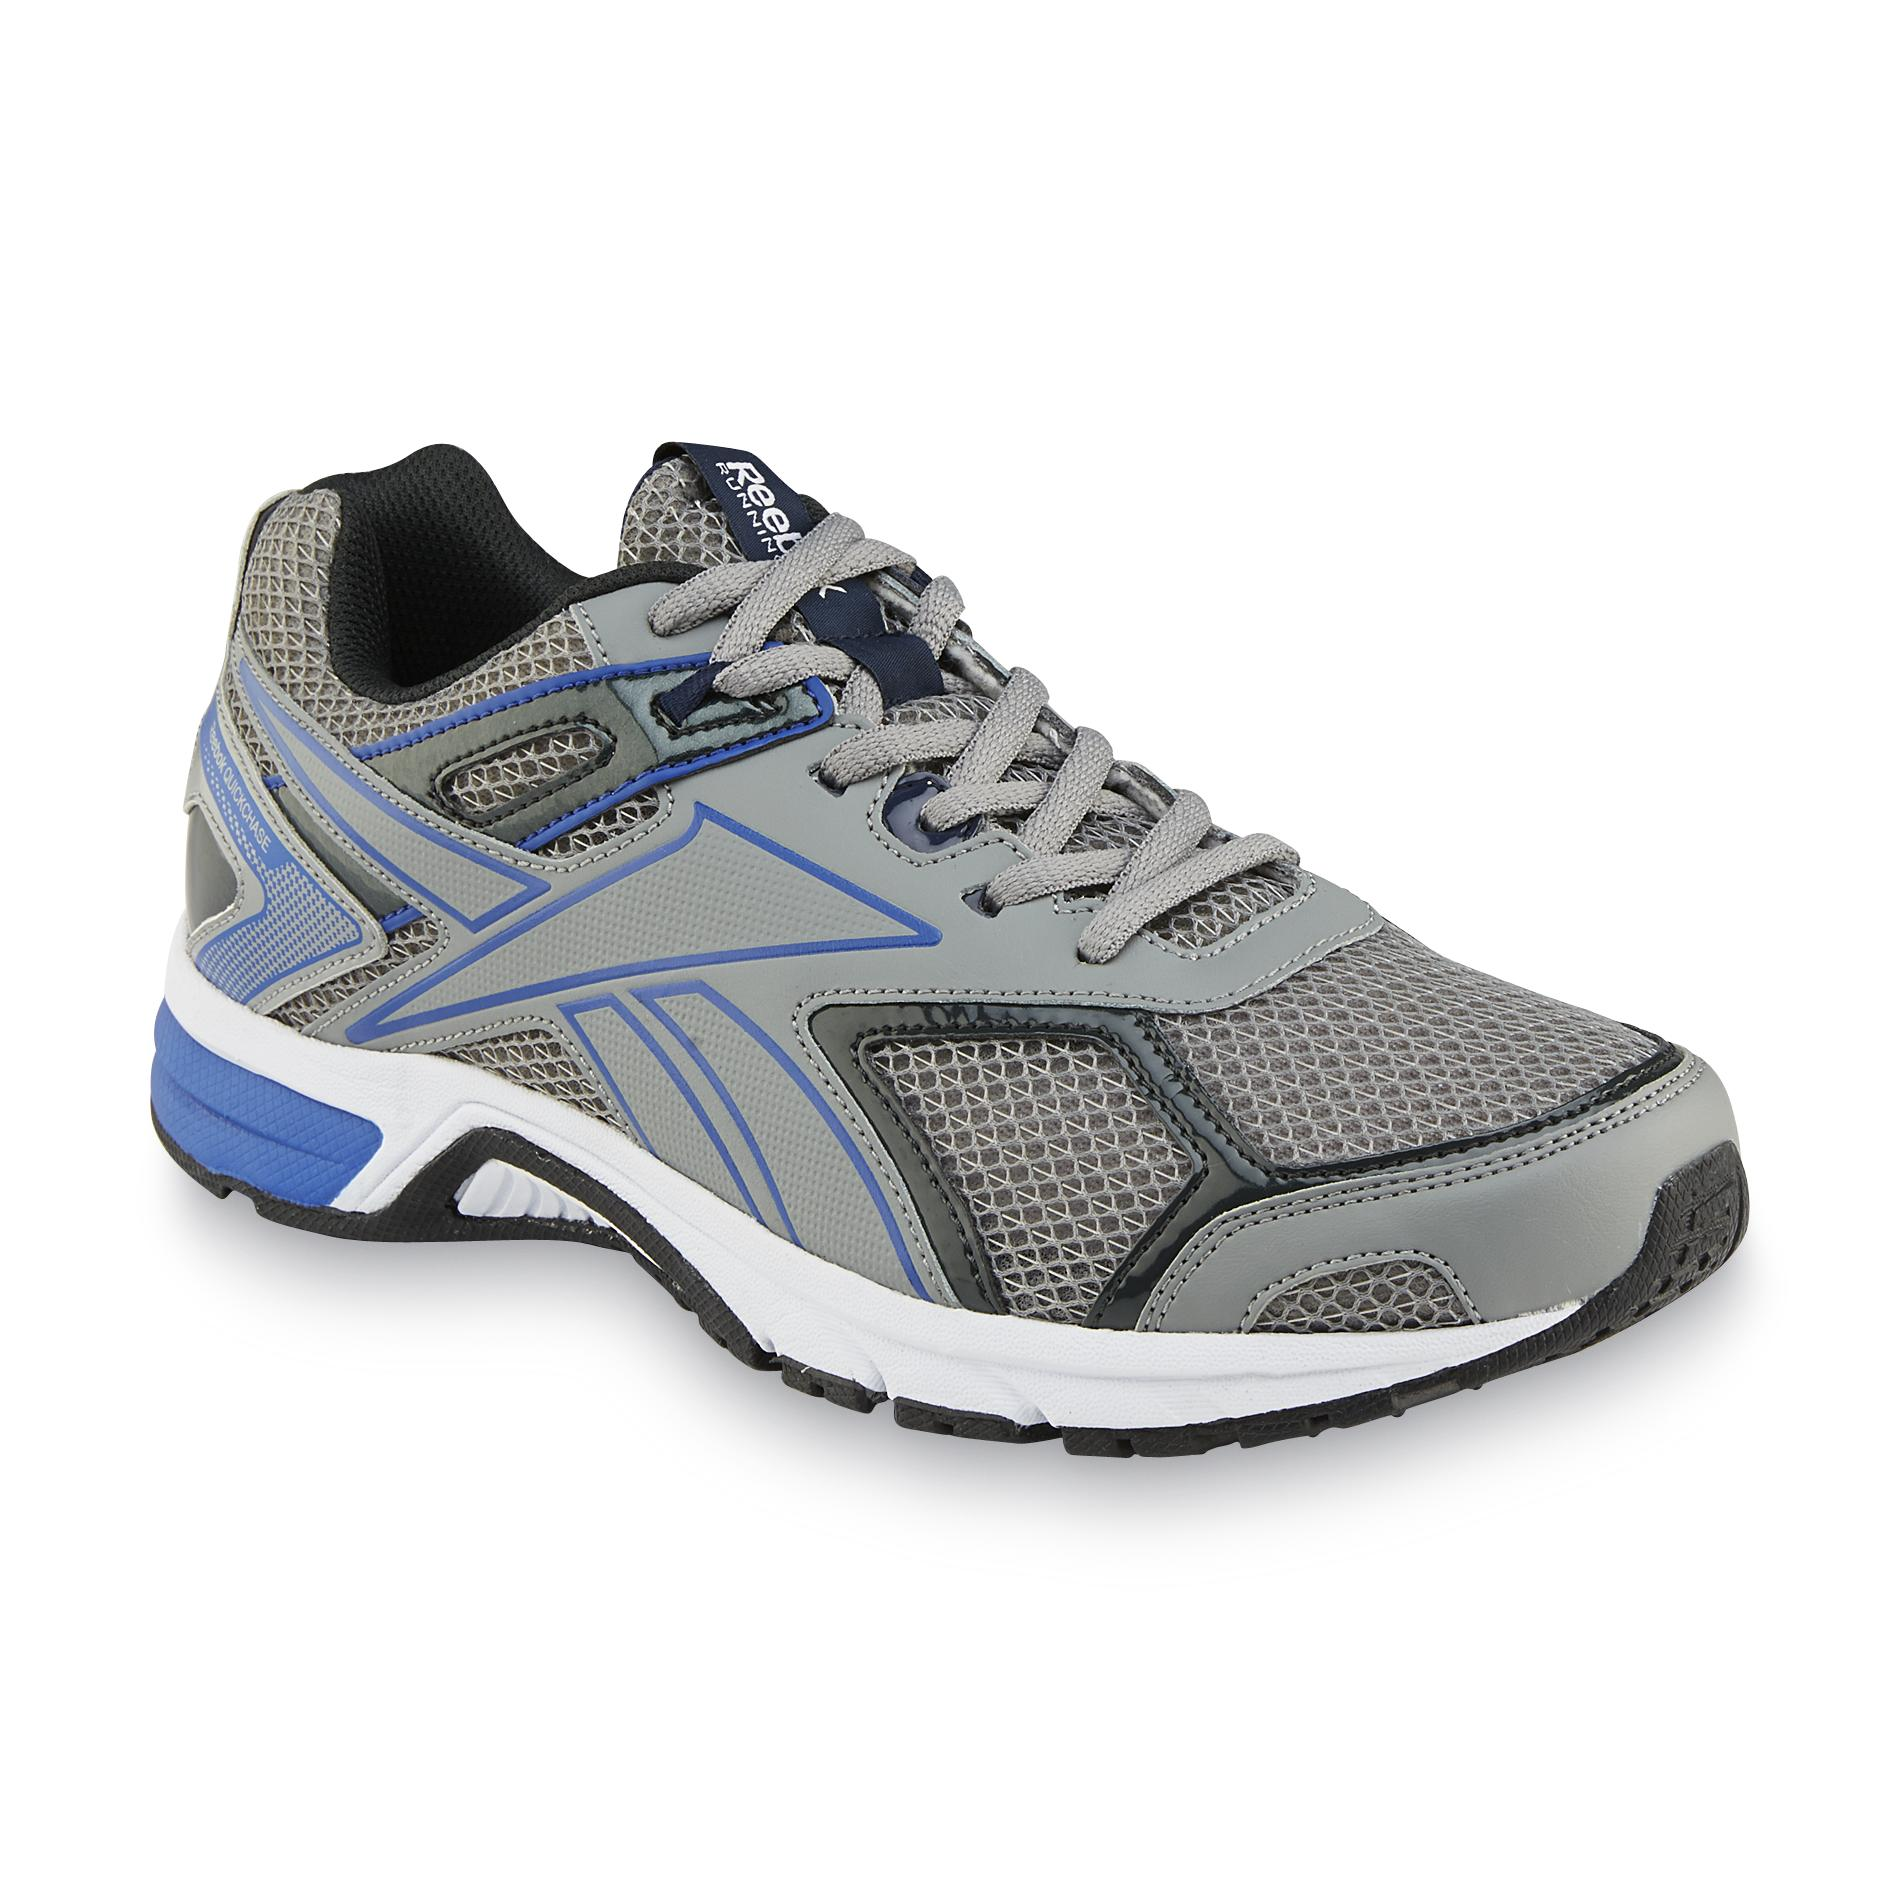 Reebok Quickchase Running Shoe